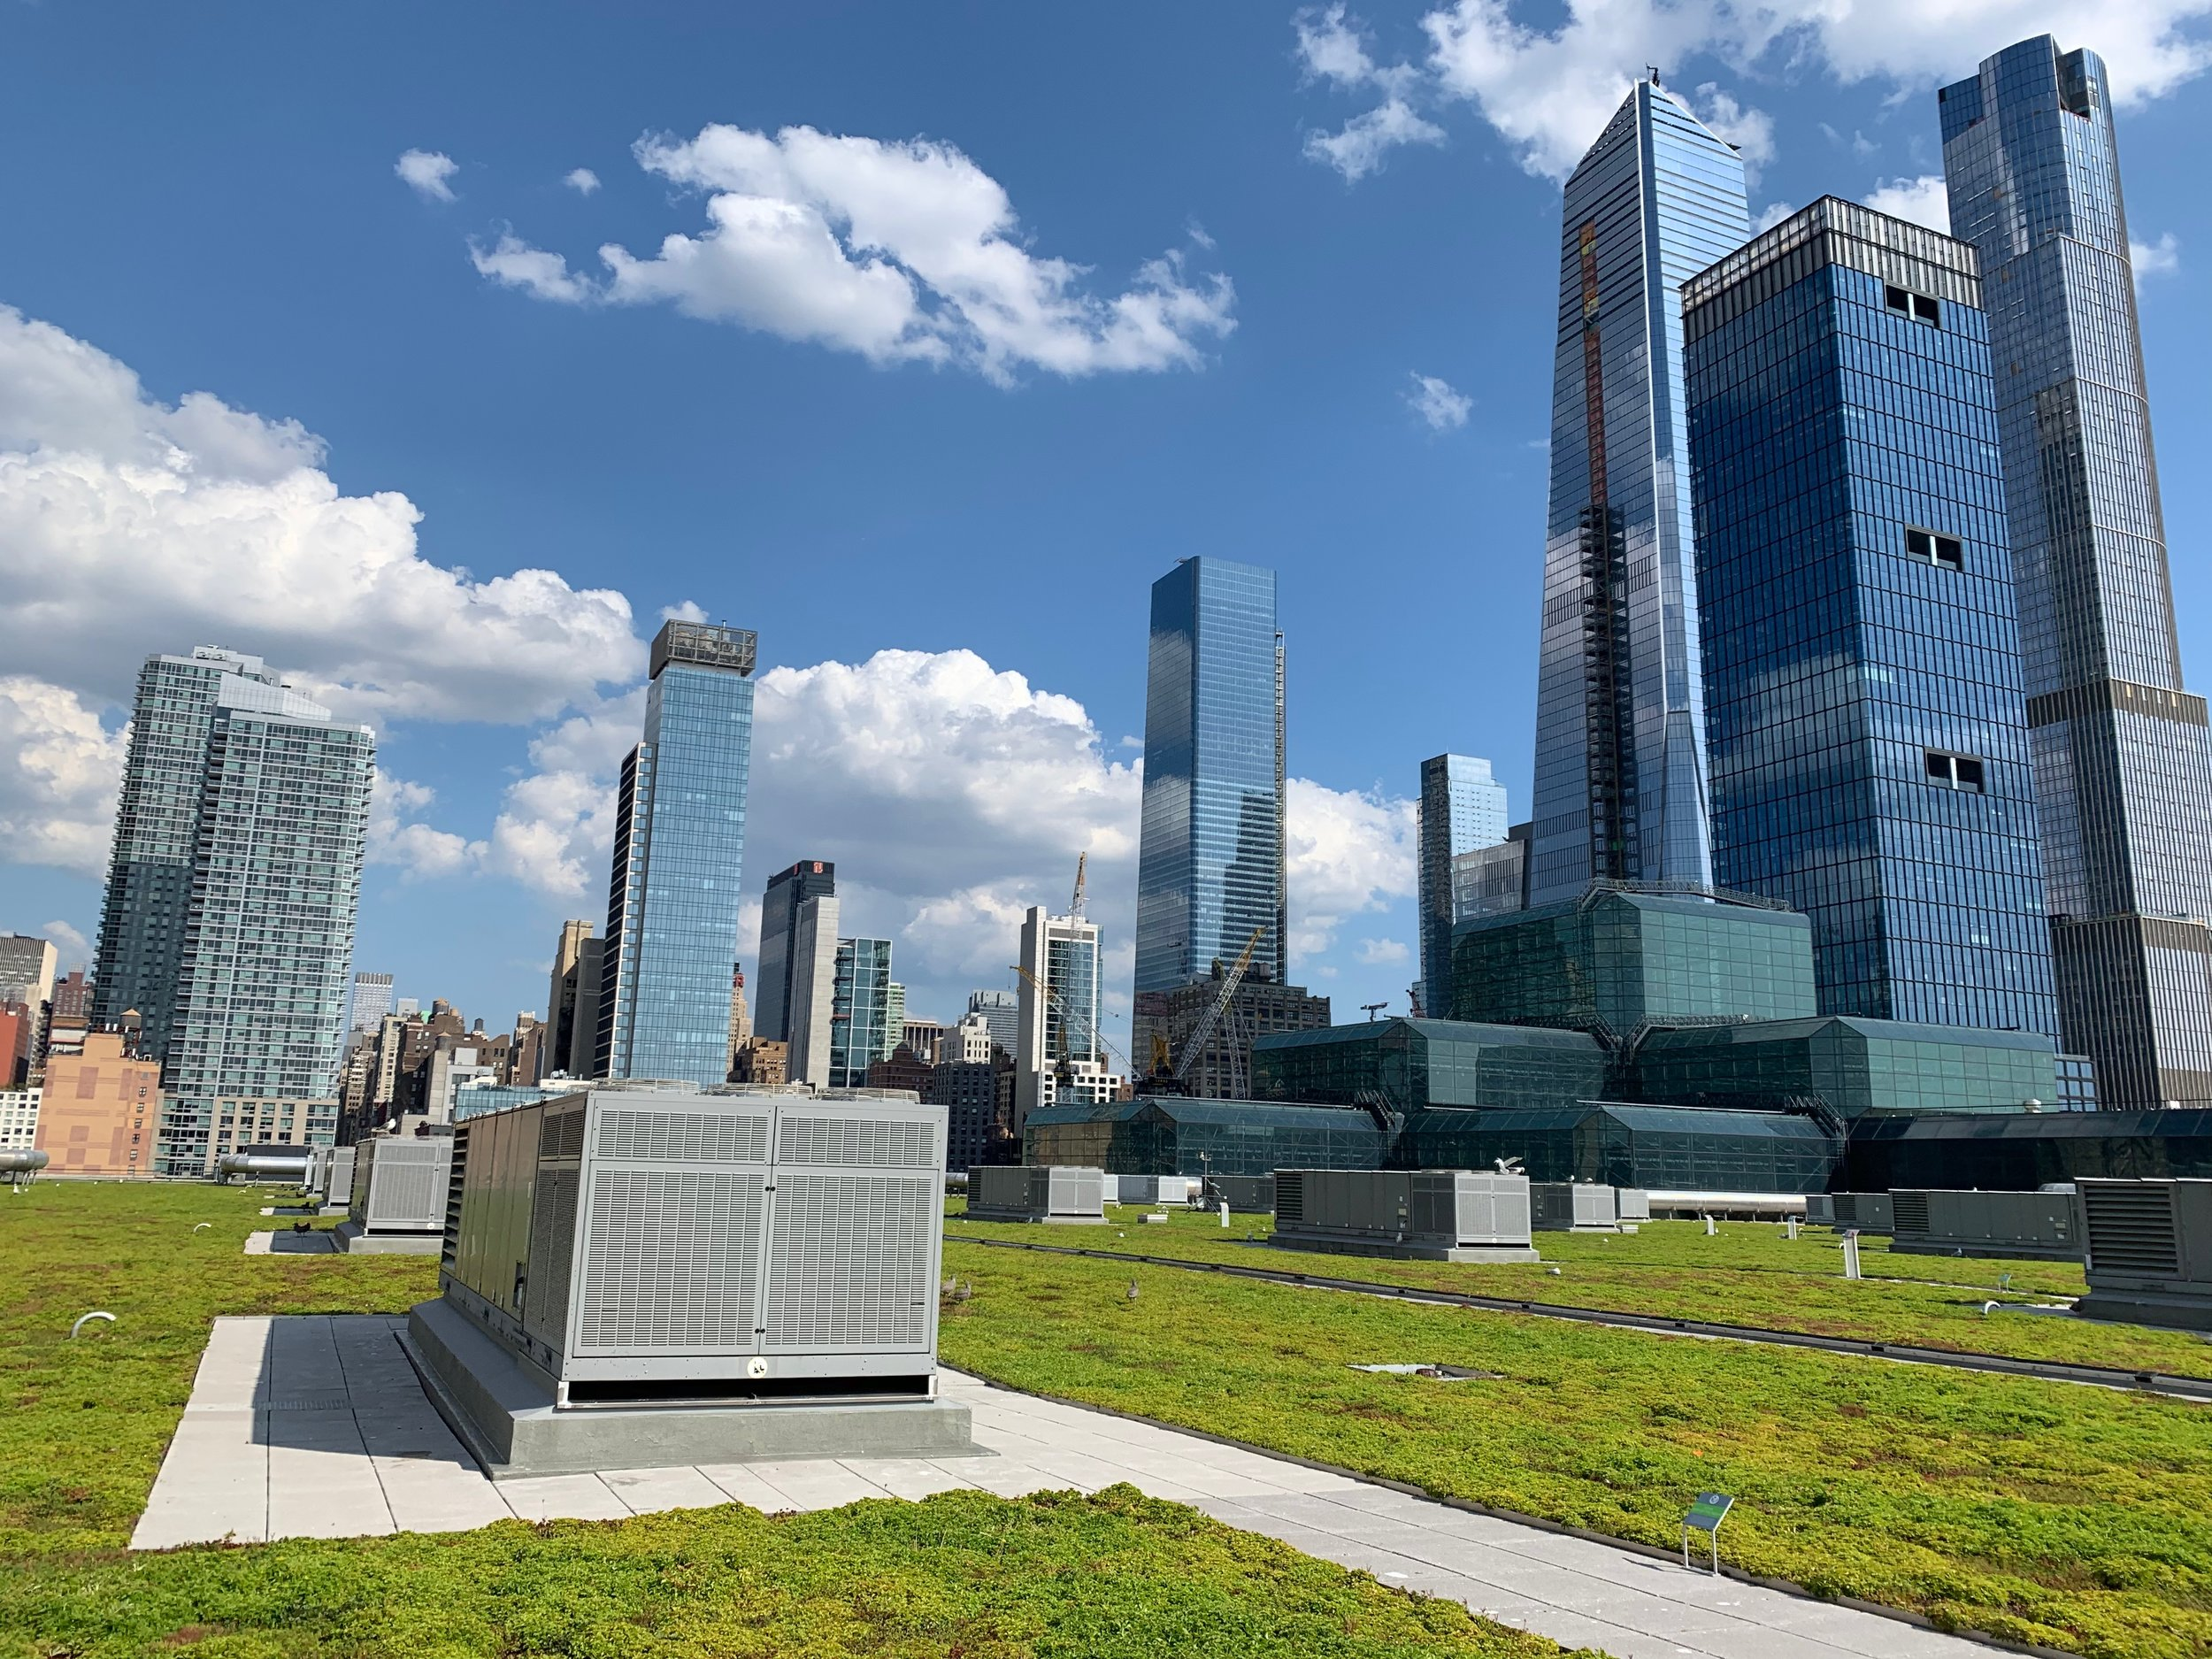 THE JAVITS CENTER'S GREEN ROOF IS THE SECOND LARGEST IN THE U.S.